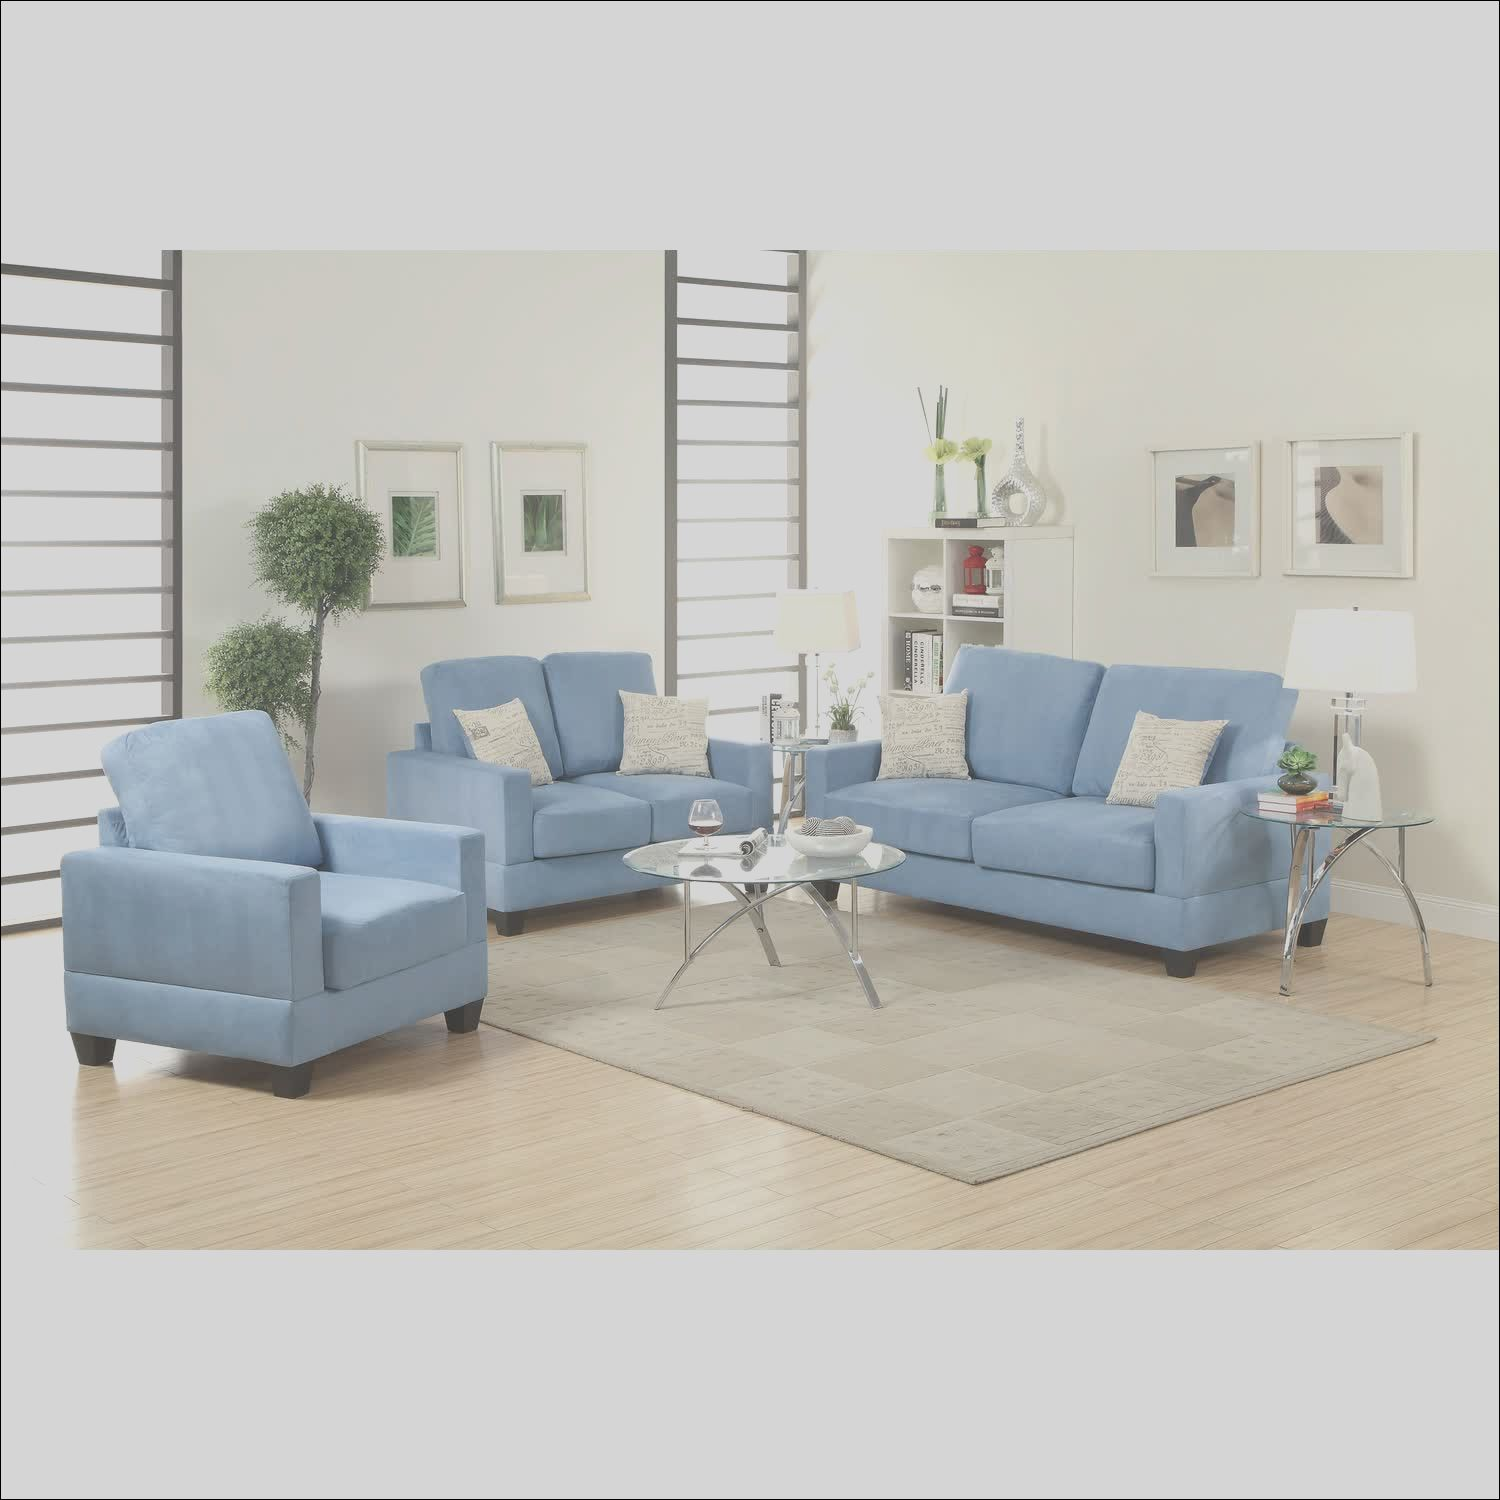 8 Gorgeous Apartment Size Furniture Living Room Collection